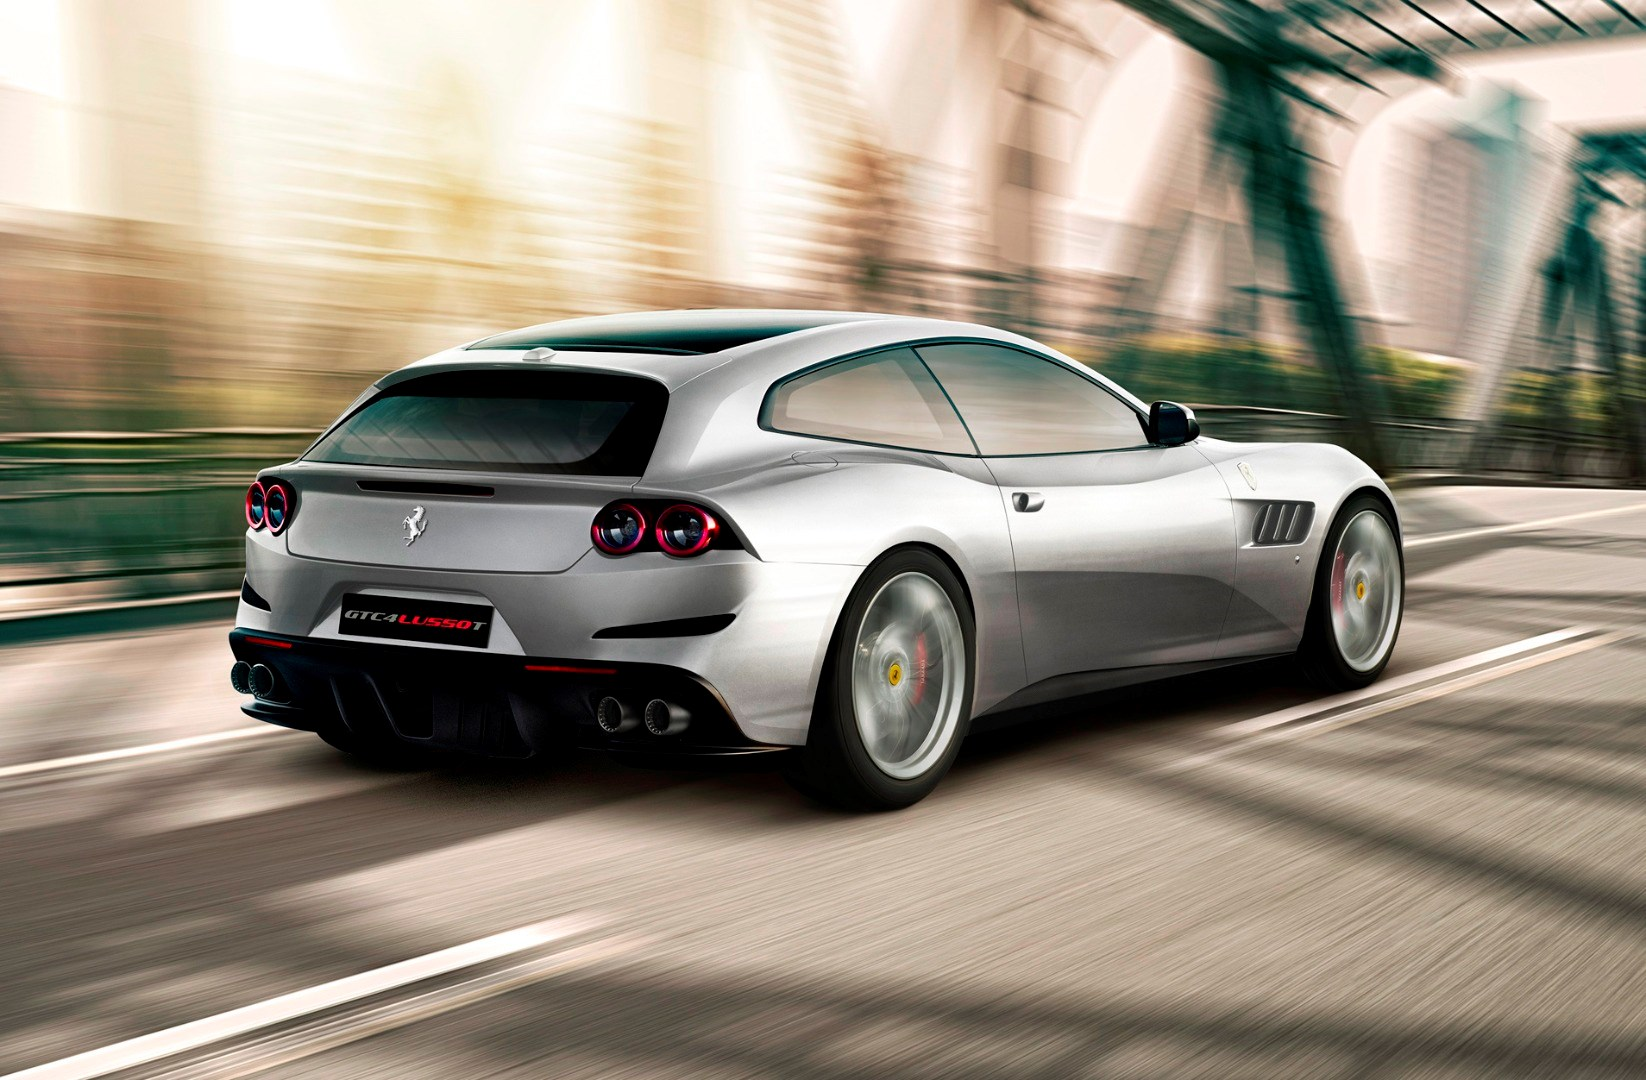 Ferrari Unveils New GTC4 Lusso T With 449kW V8 Turbo Thumbnail